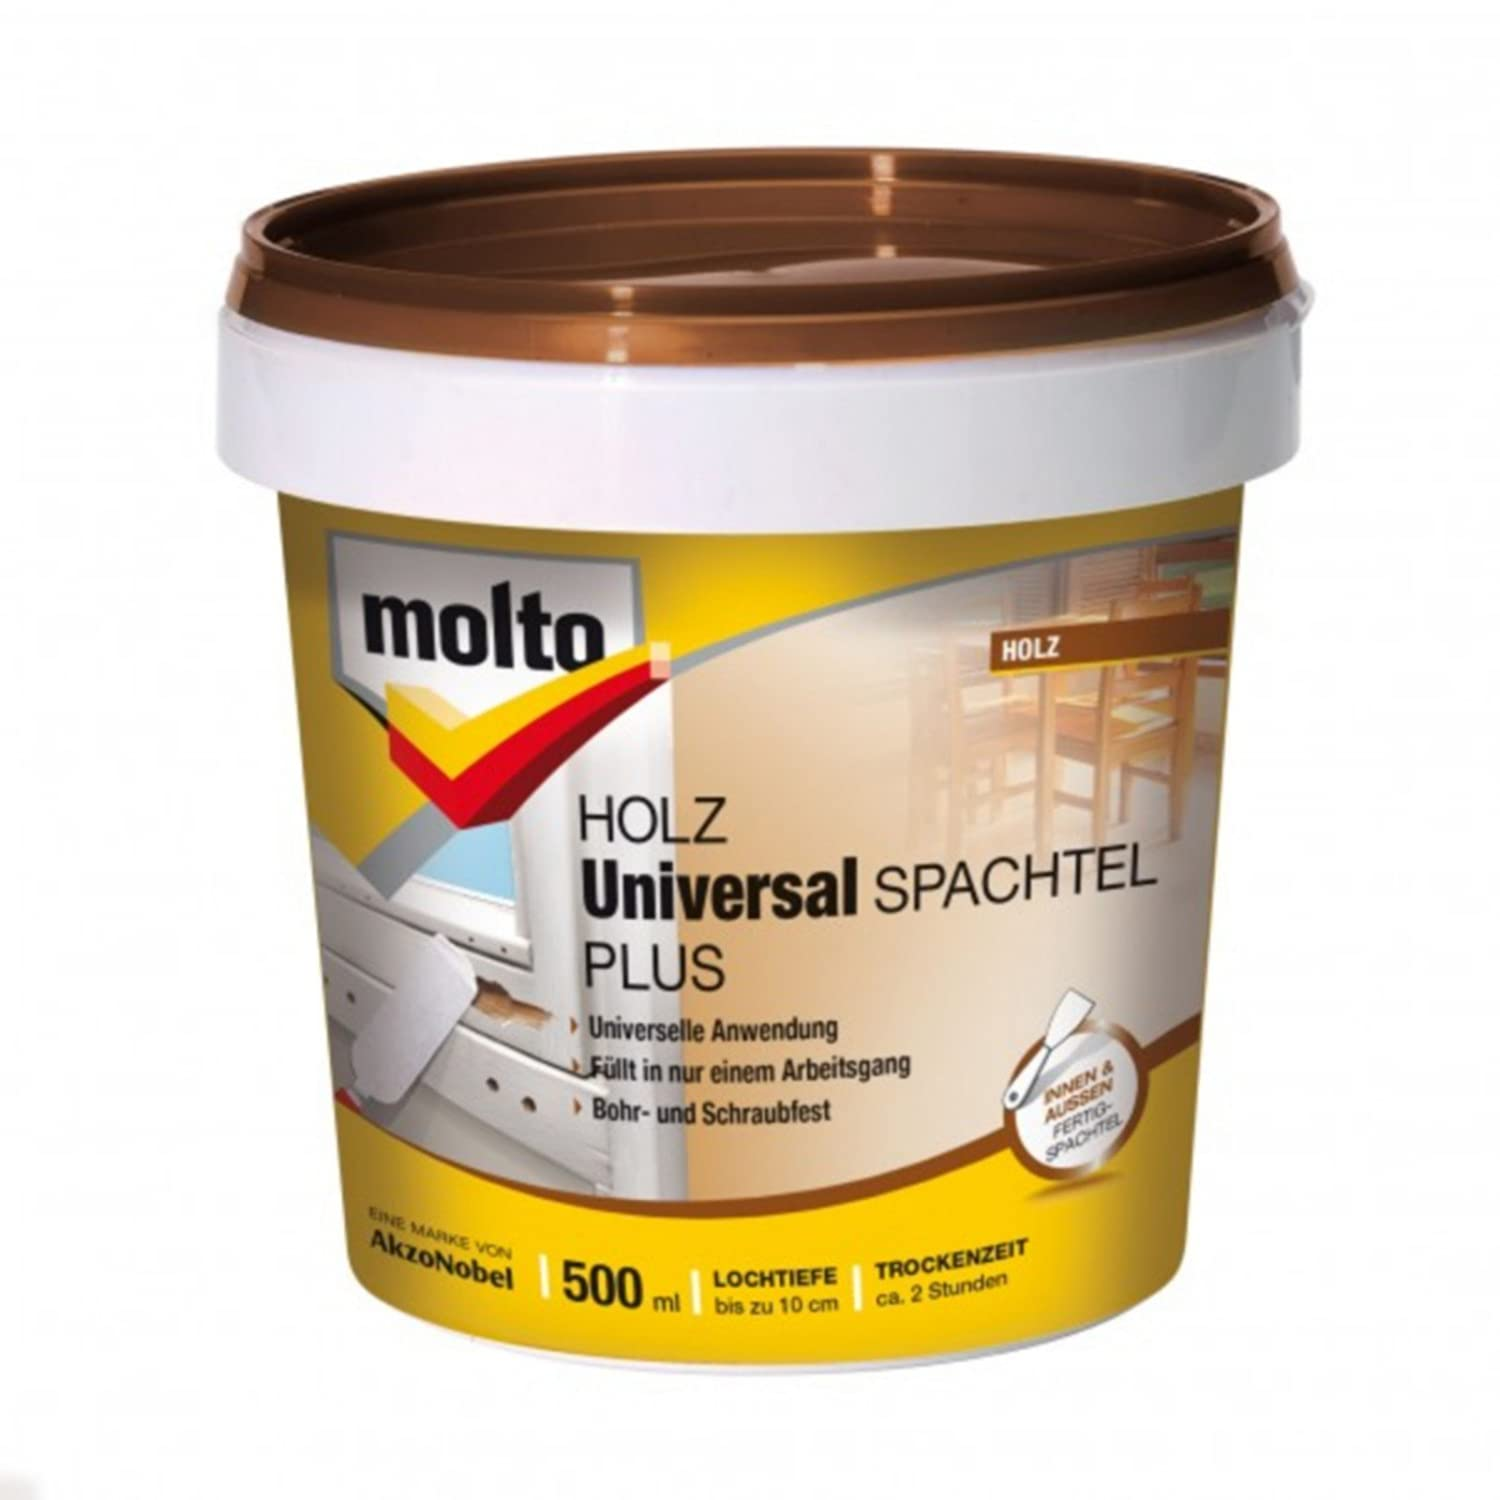 Molto Holz Universal Spachtel Plus, 500 ml Akzo Nobel